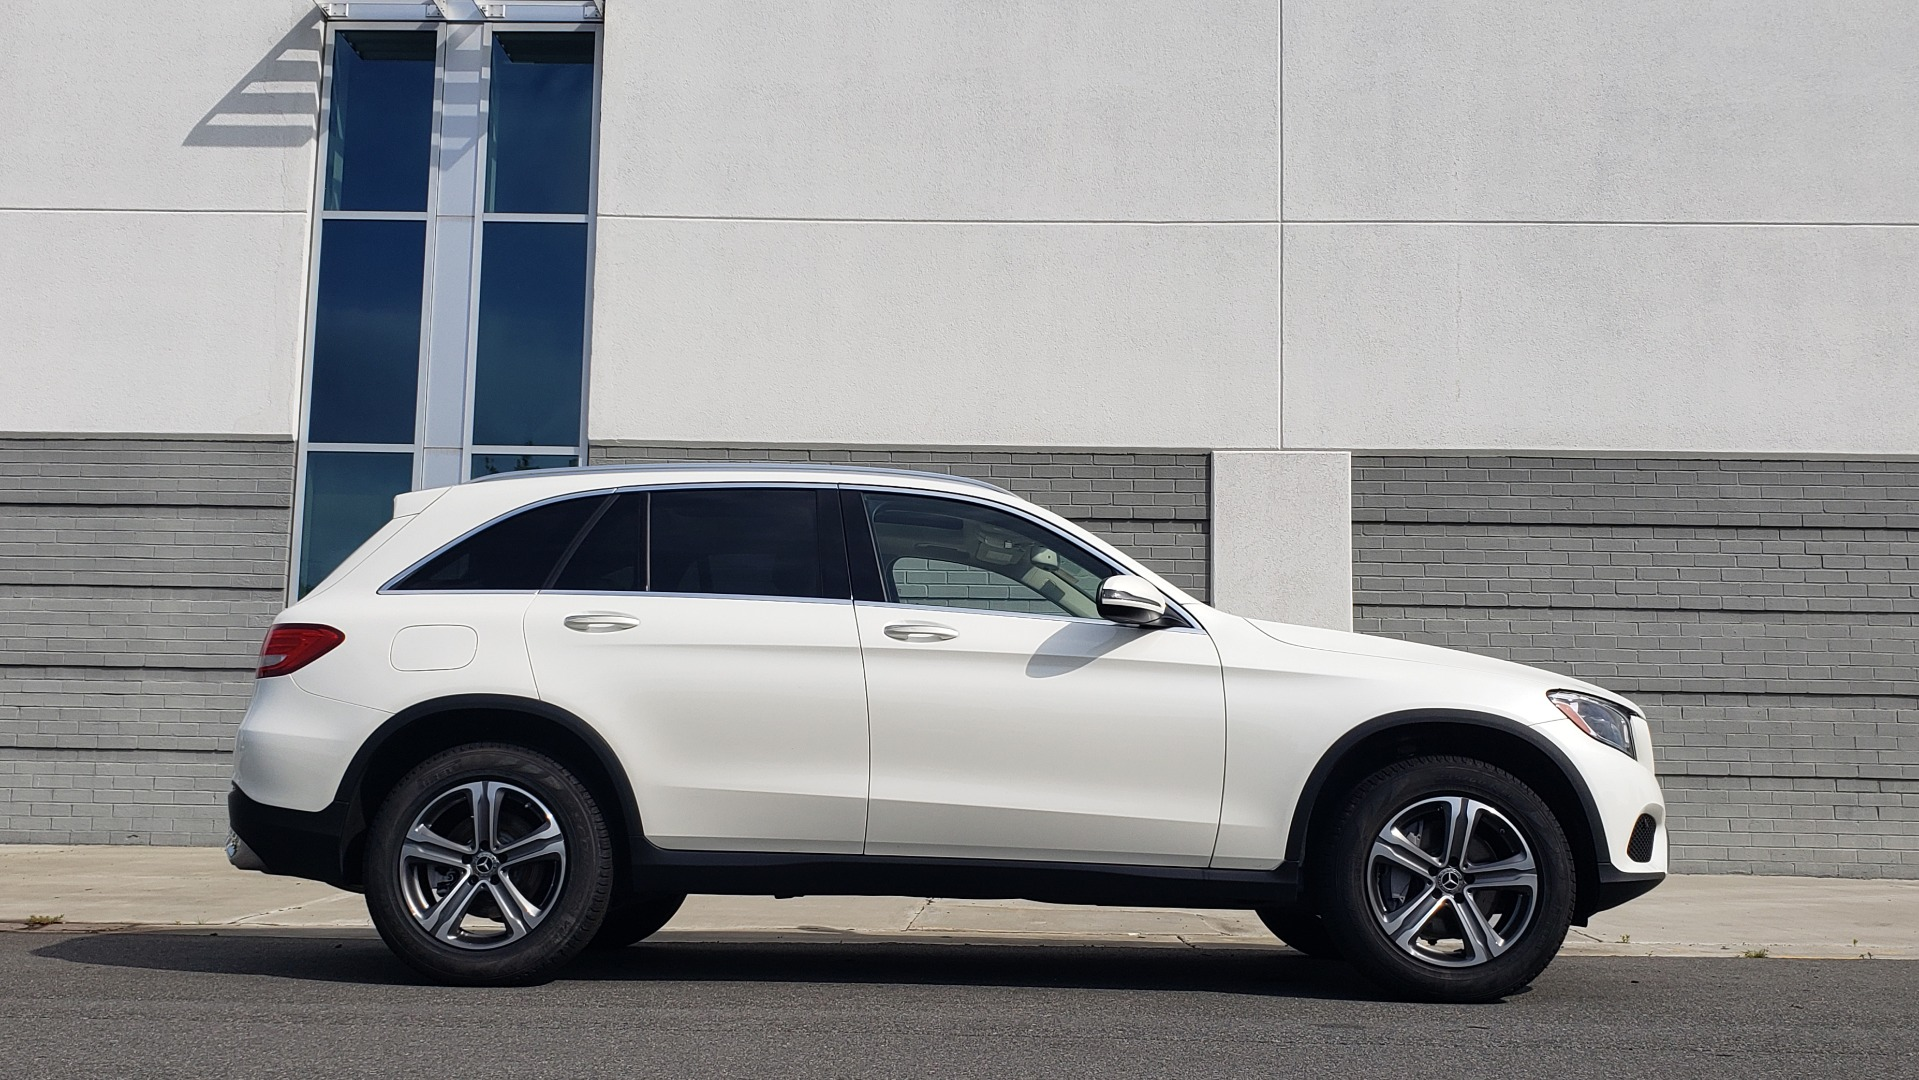 Used 2018 Mercedes-Benz GLC 300 4MATIC / PREM PKG / PANO-ROOF / APPLE / REARVIEW for sale $33,397 at Formula Imports in Charlotte NC 28227 9